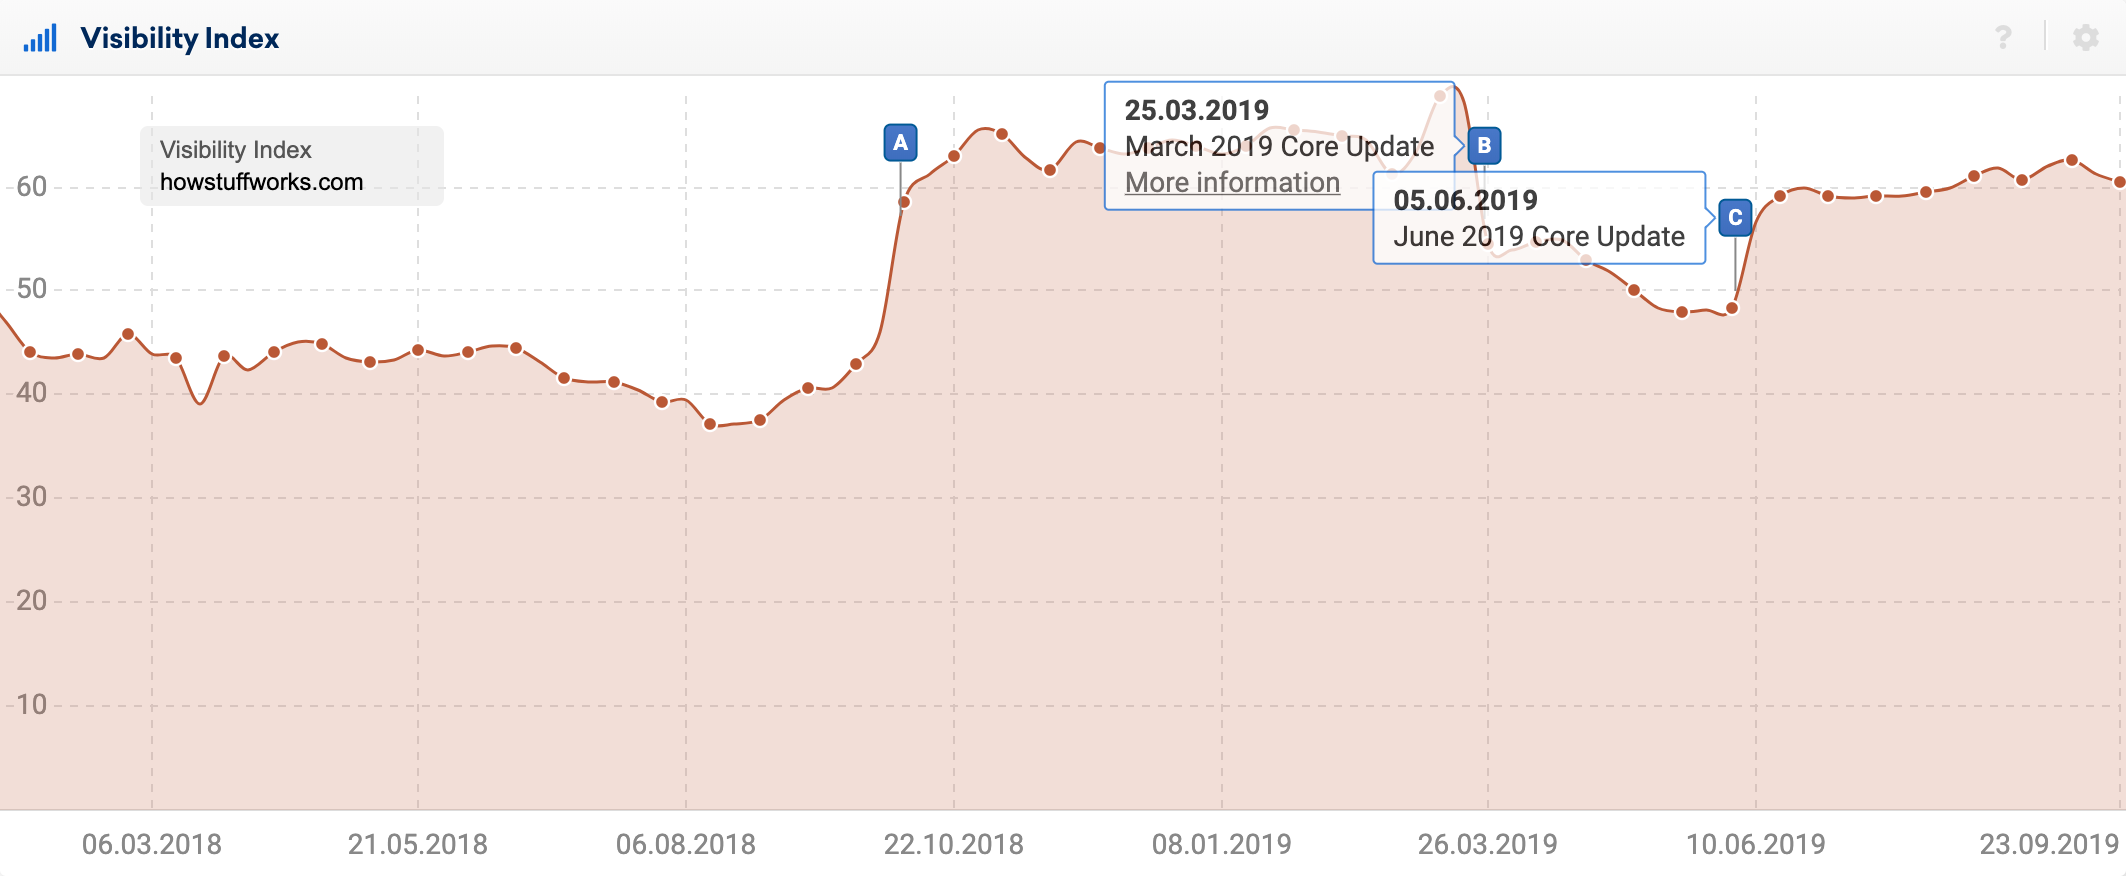 SISTRIX Visibility Index graph for the domain howstuffworks.com showint the timeframe of Feburary 2018 until today. There are three pins shown within the graph, two of them show text, denoting the March 2019 Core Update on 25.03.2019 and the June 2019 Core Update from 05.06.2019.